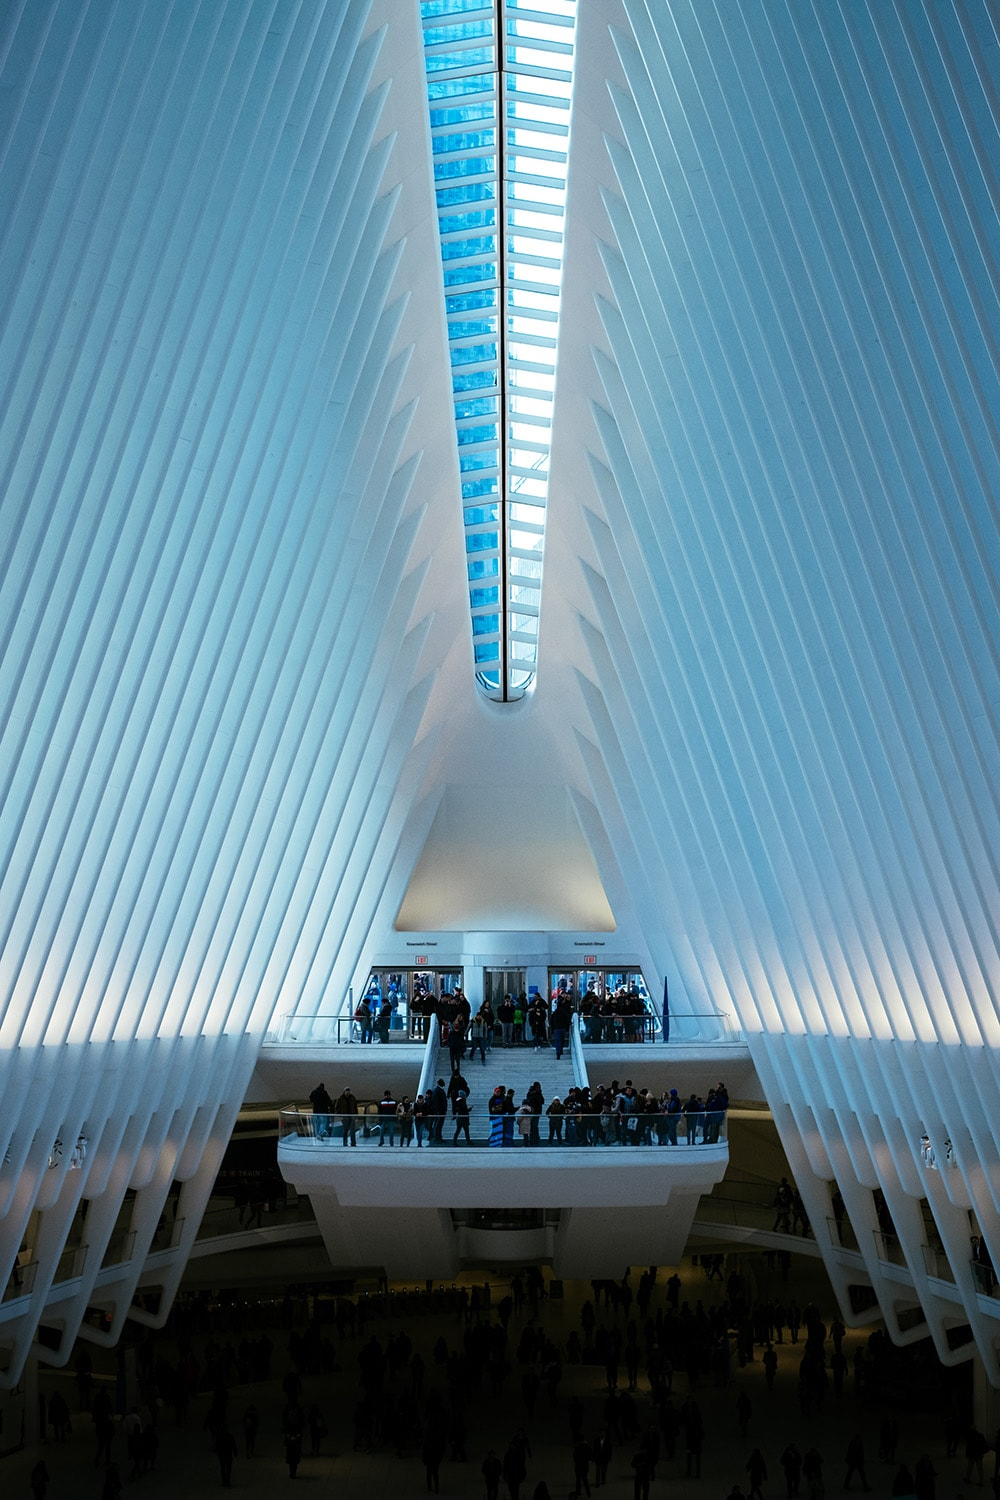 inside of The Oculus in New York City